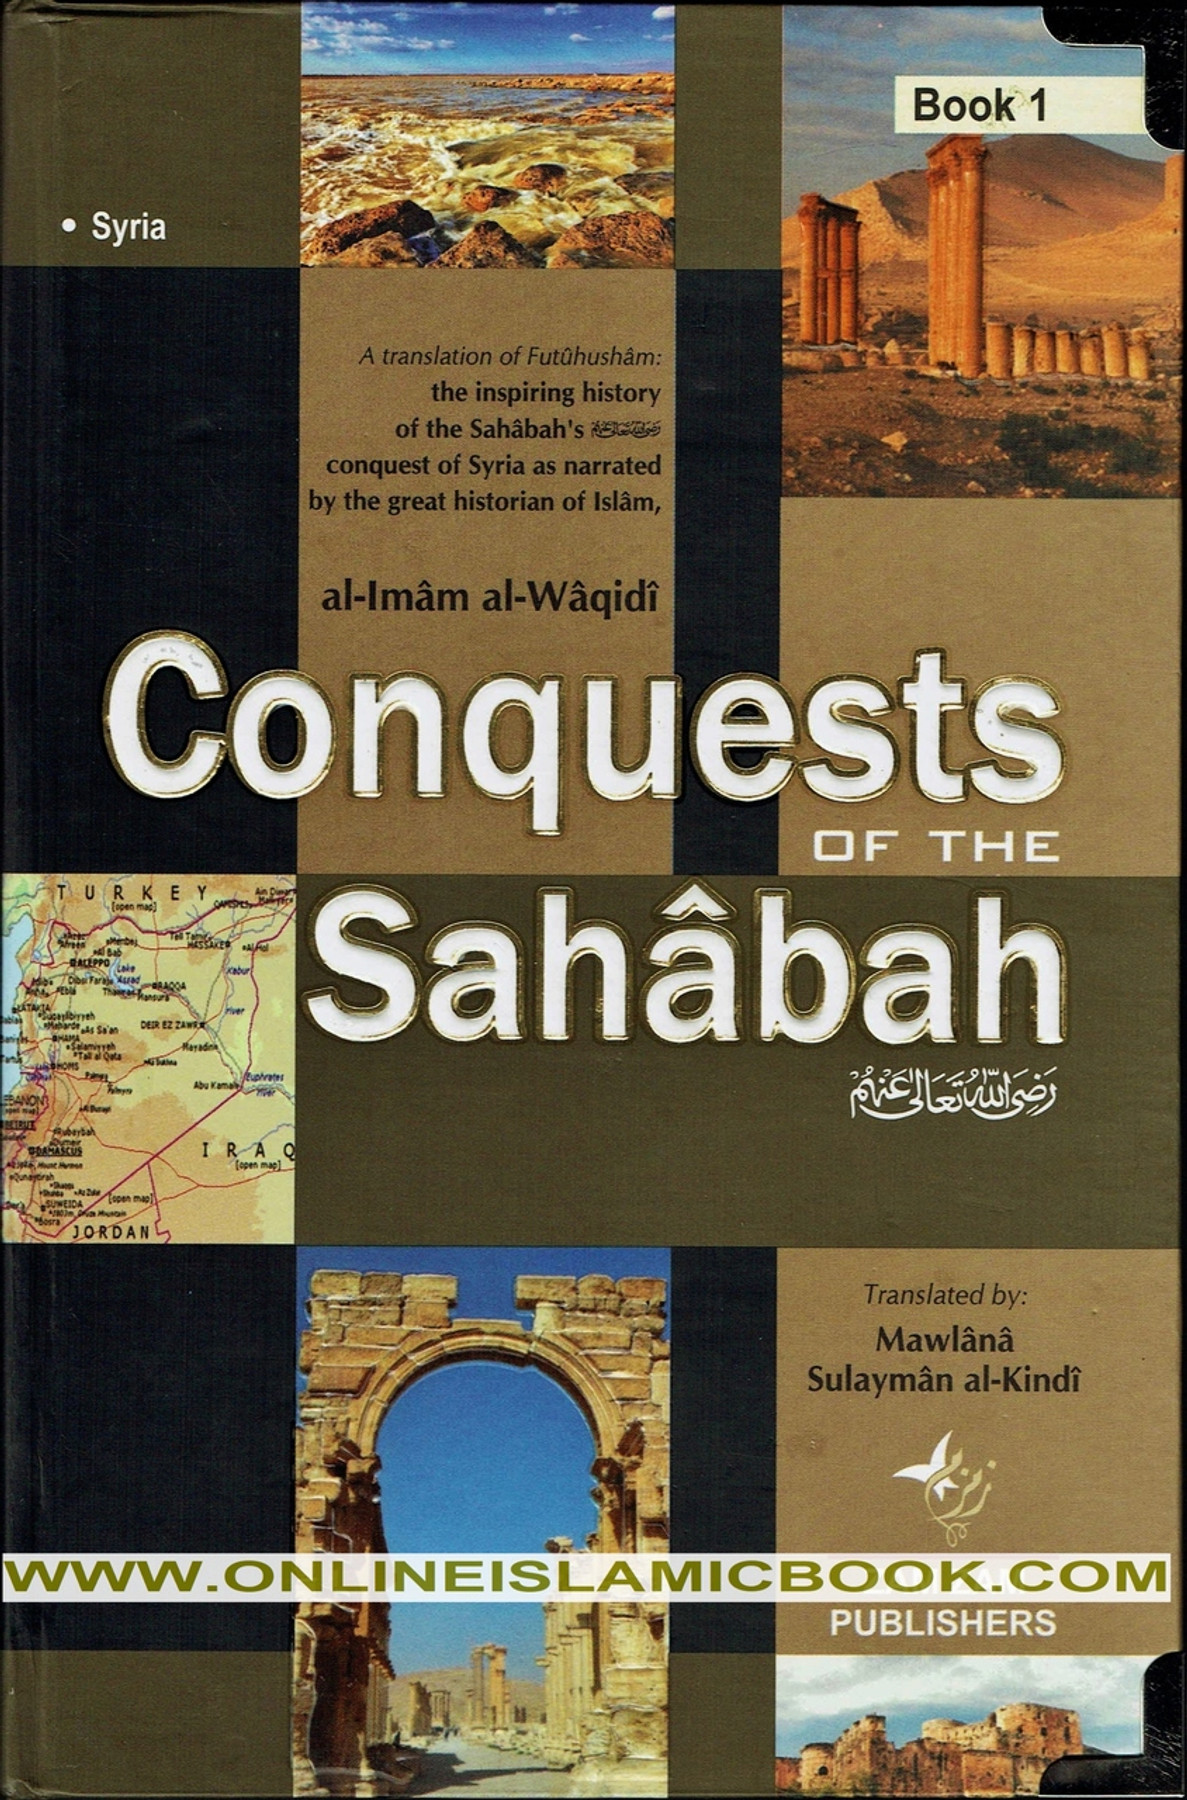 Conquests of the Sahabah